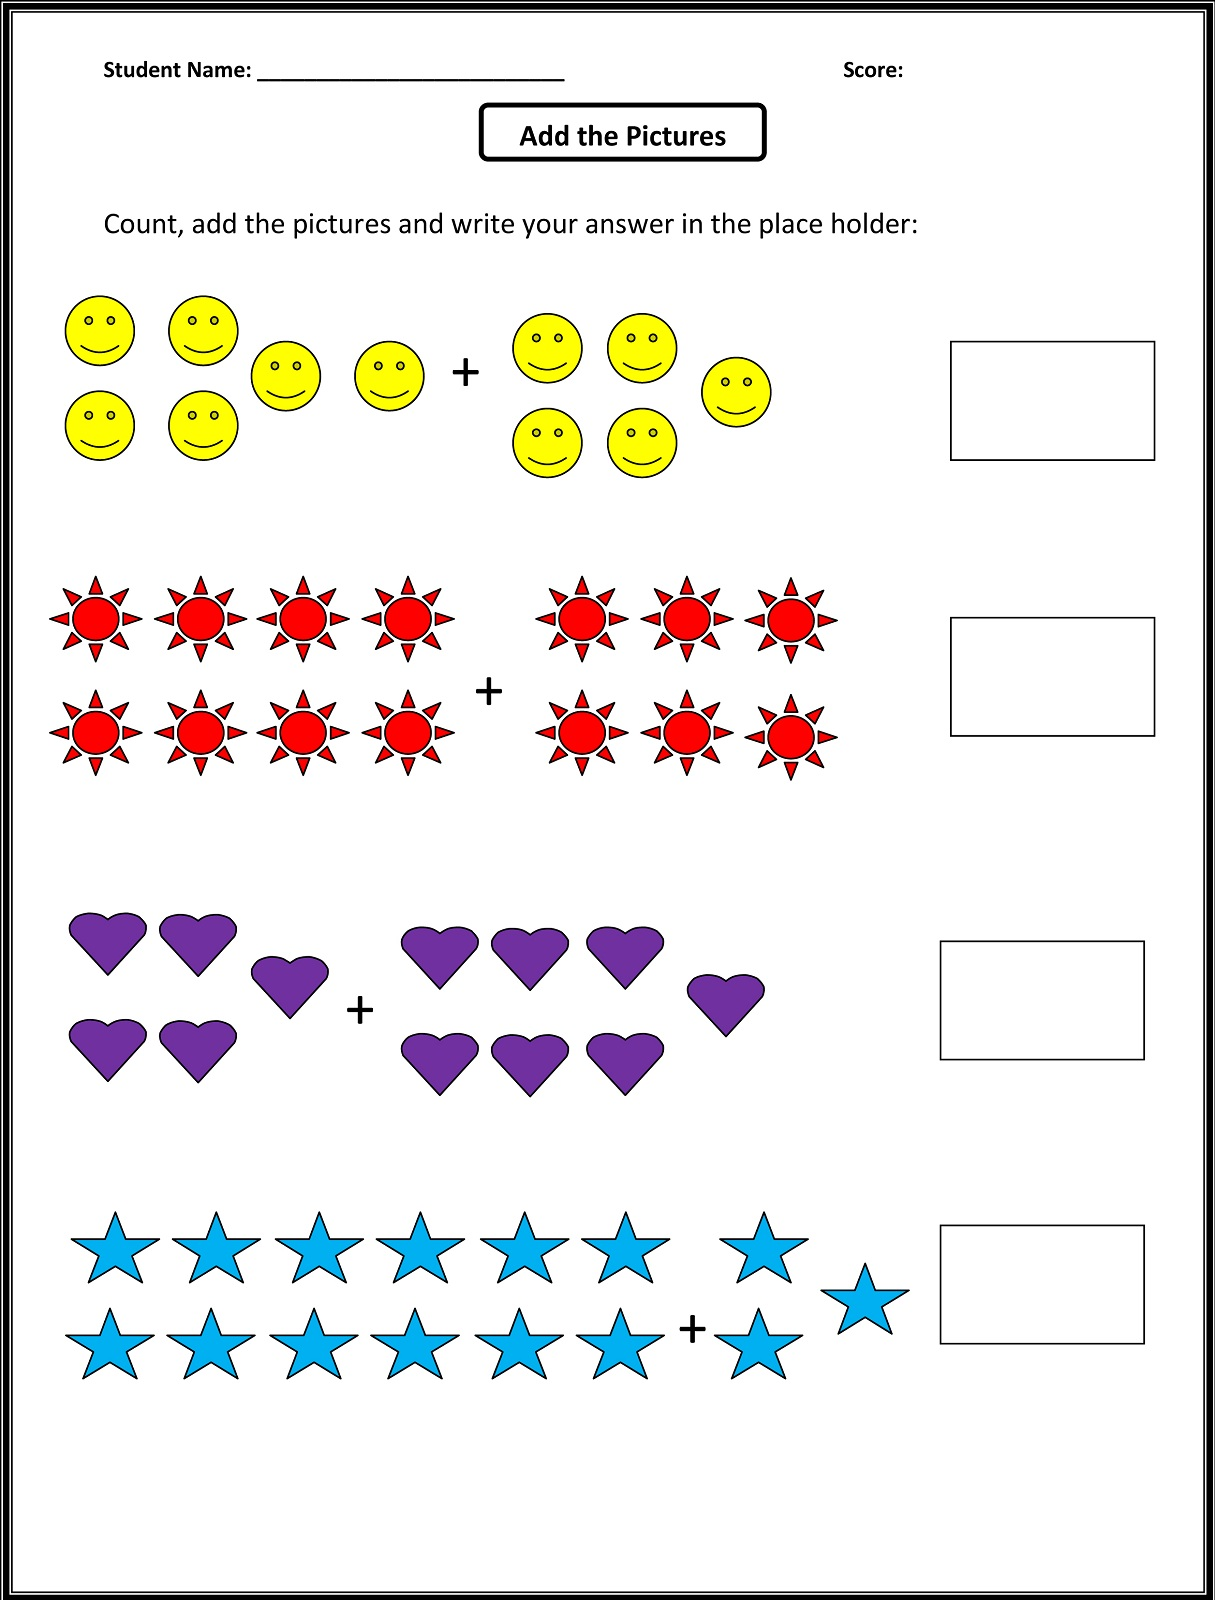 worksheets for 1st grade math activity shelter. Black Bedroom Furniture Sets. Home Design Ideas